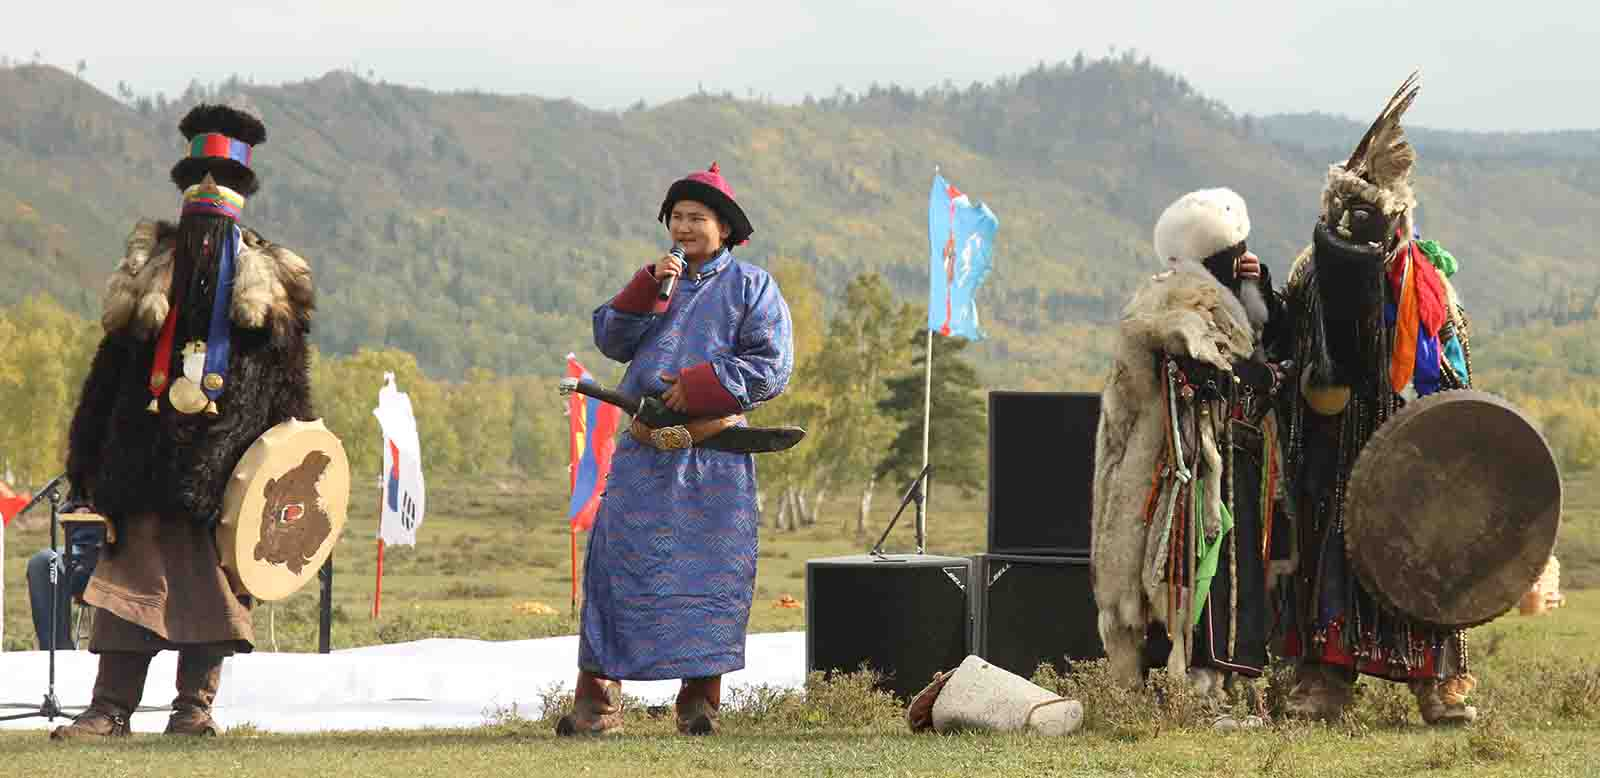 Mother Earth Shaman Festival 2015